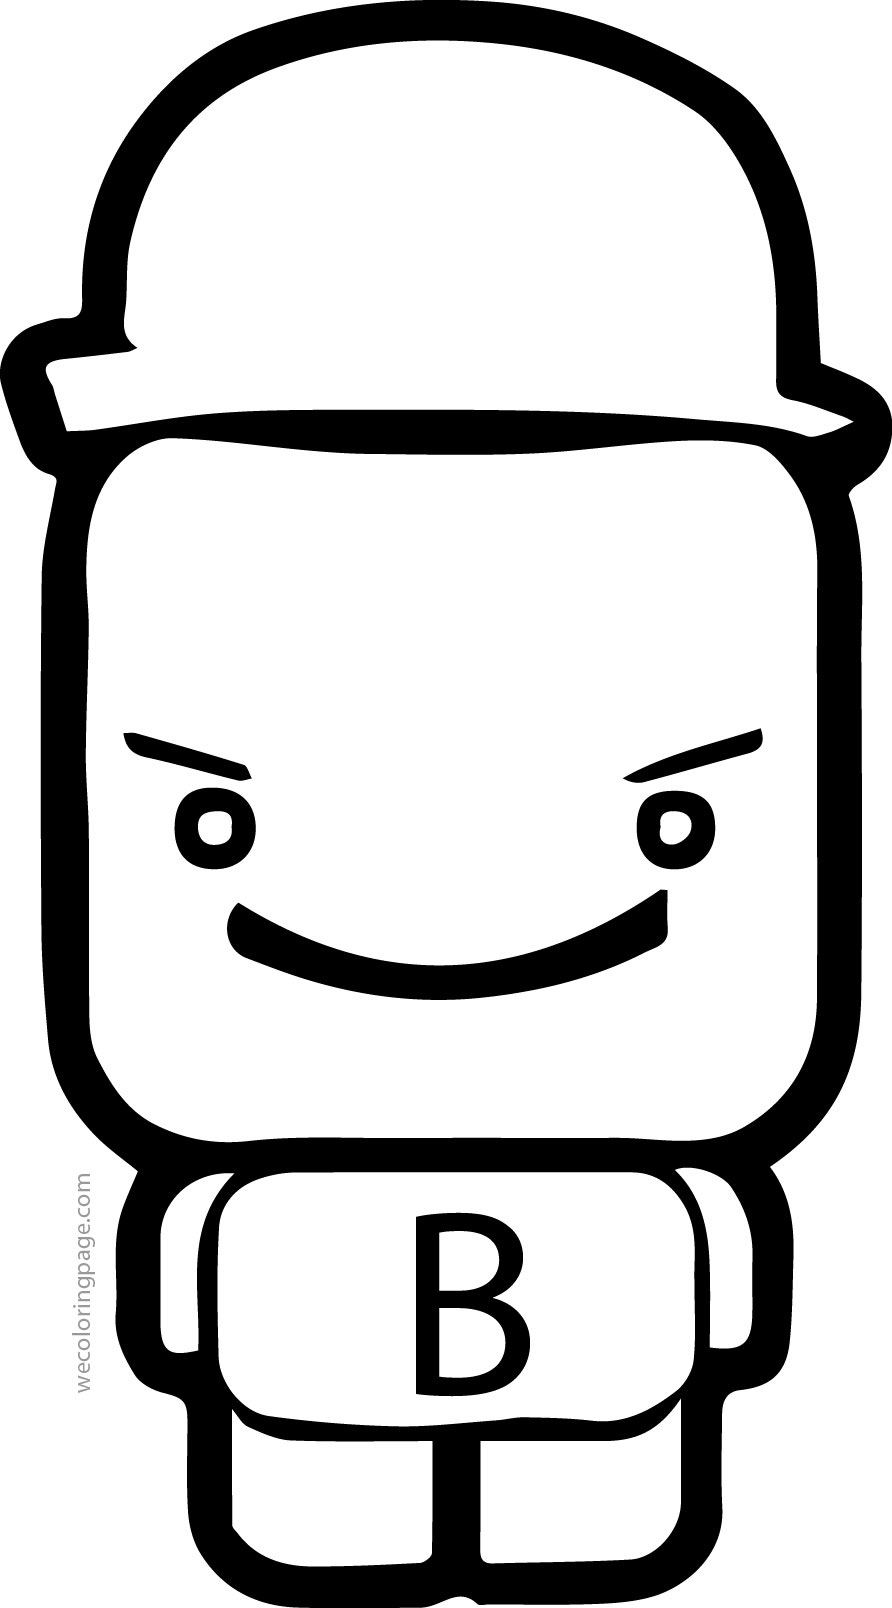 Cube Figure B Letter Coloring Page